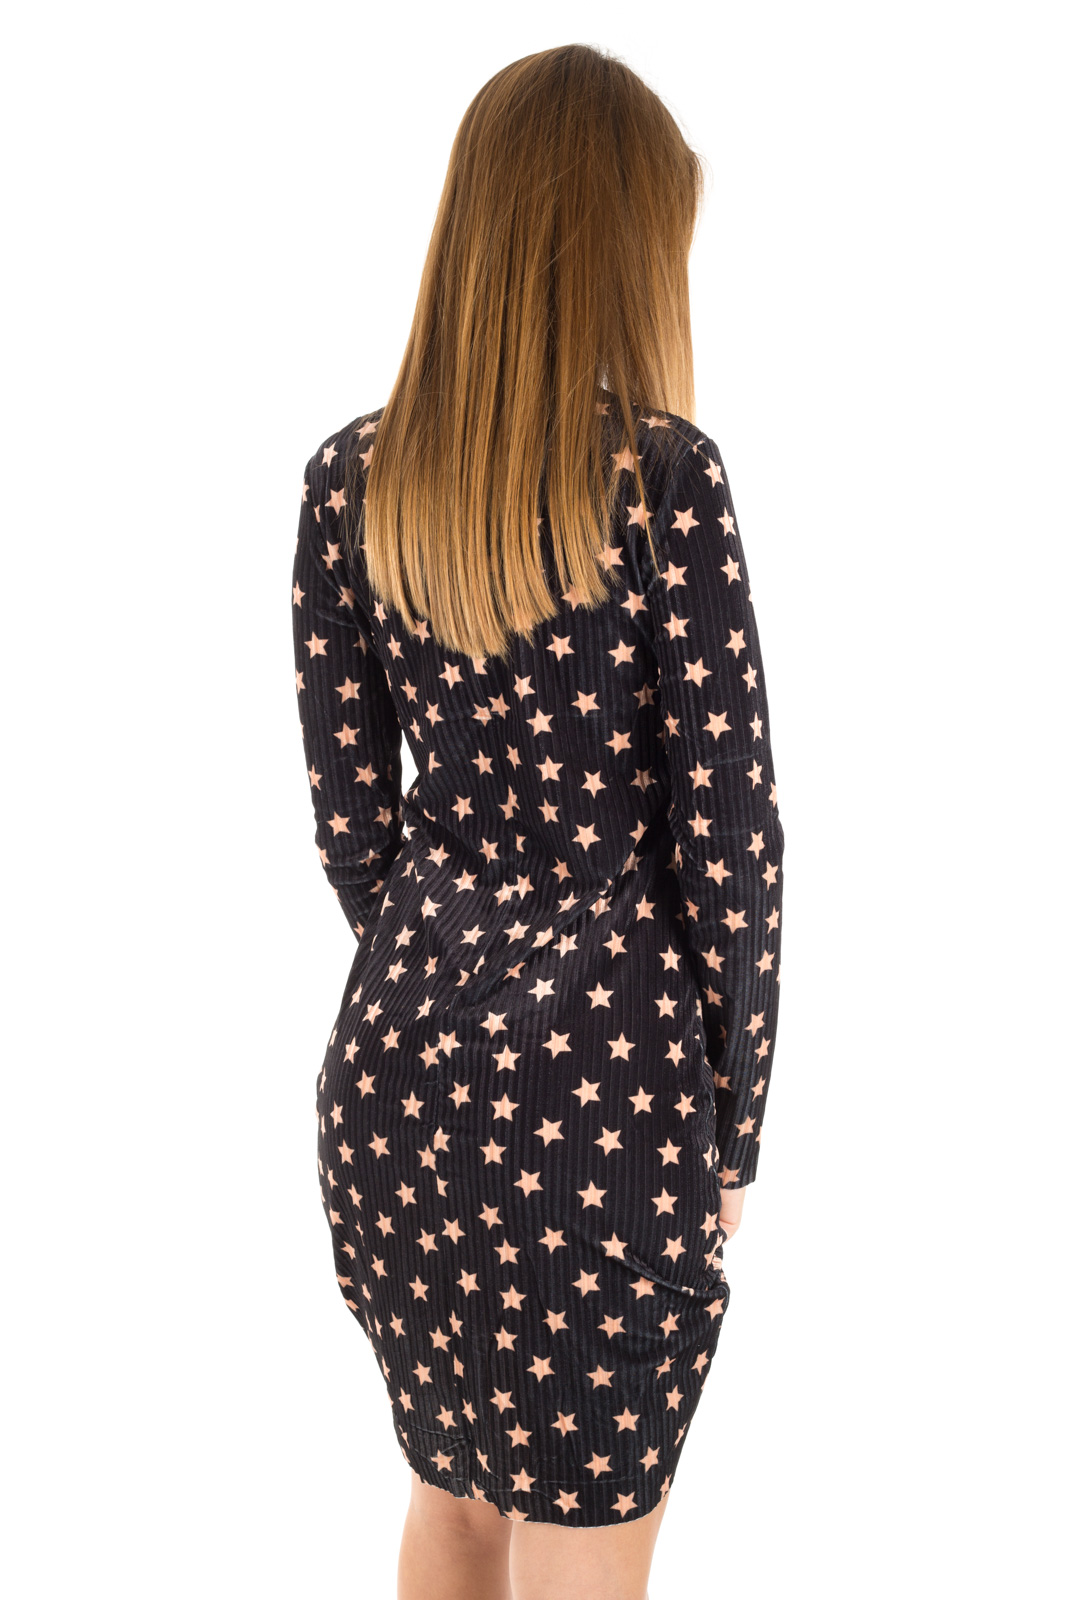 Glamorous - Velvet dress with stars